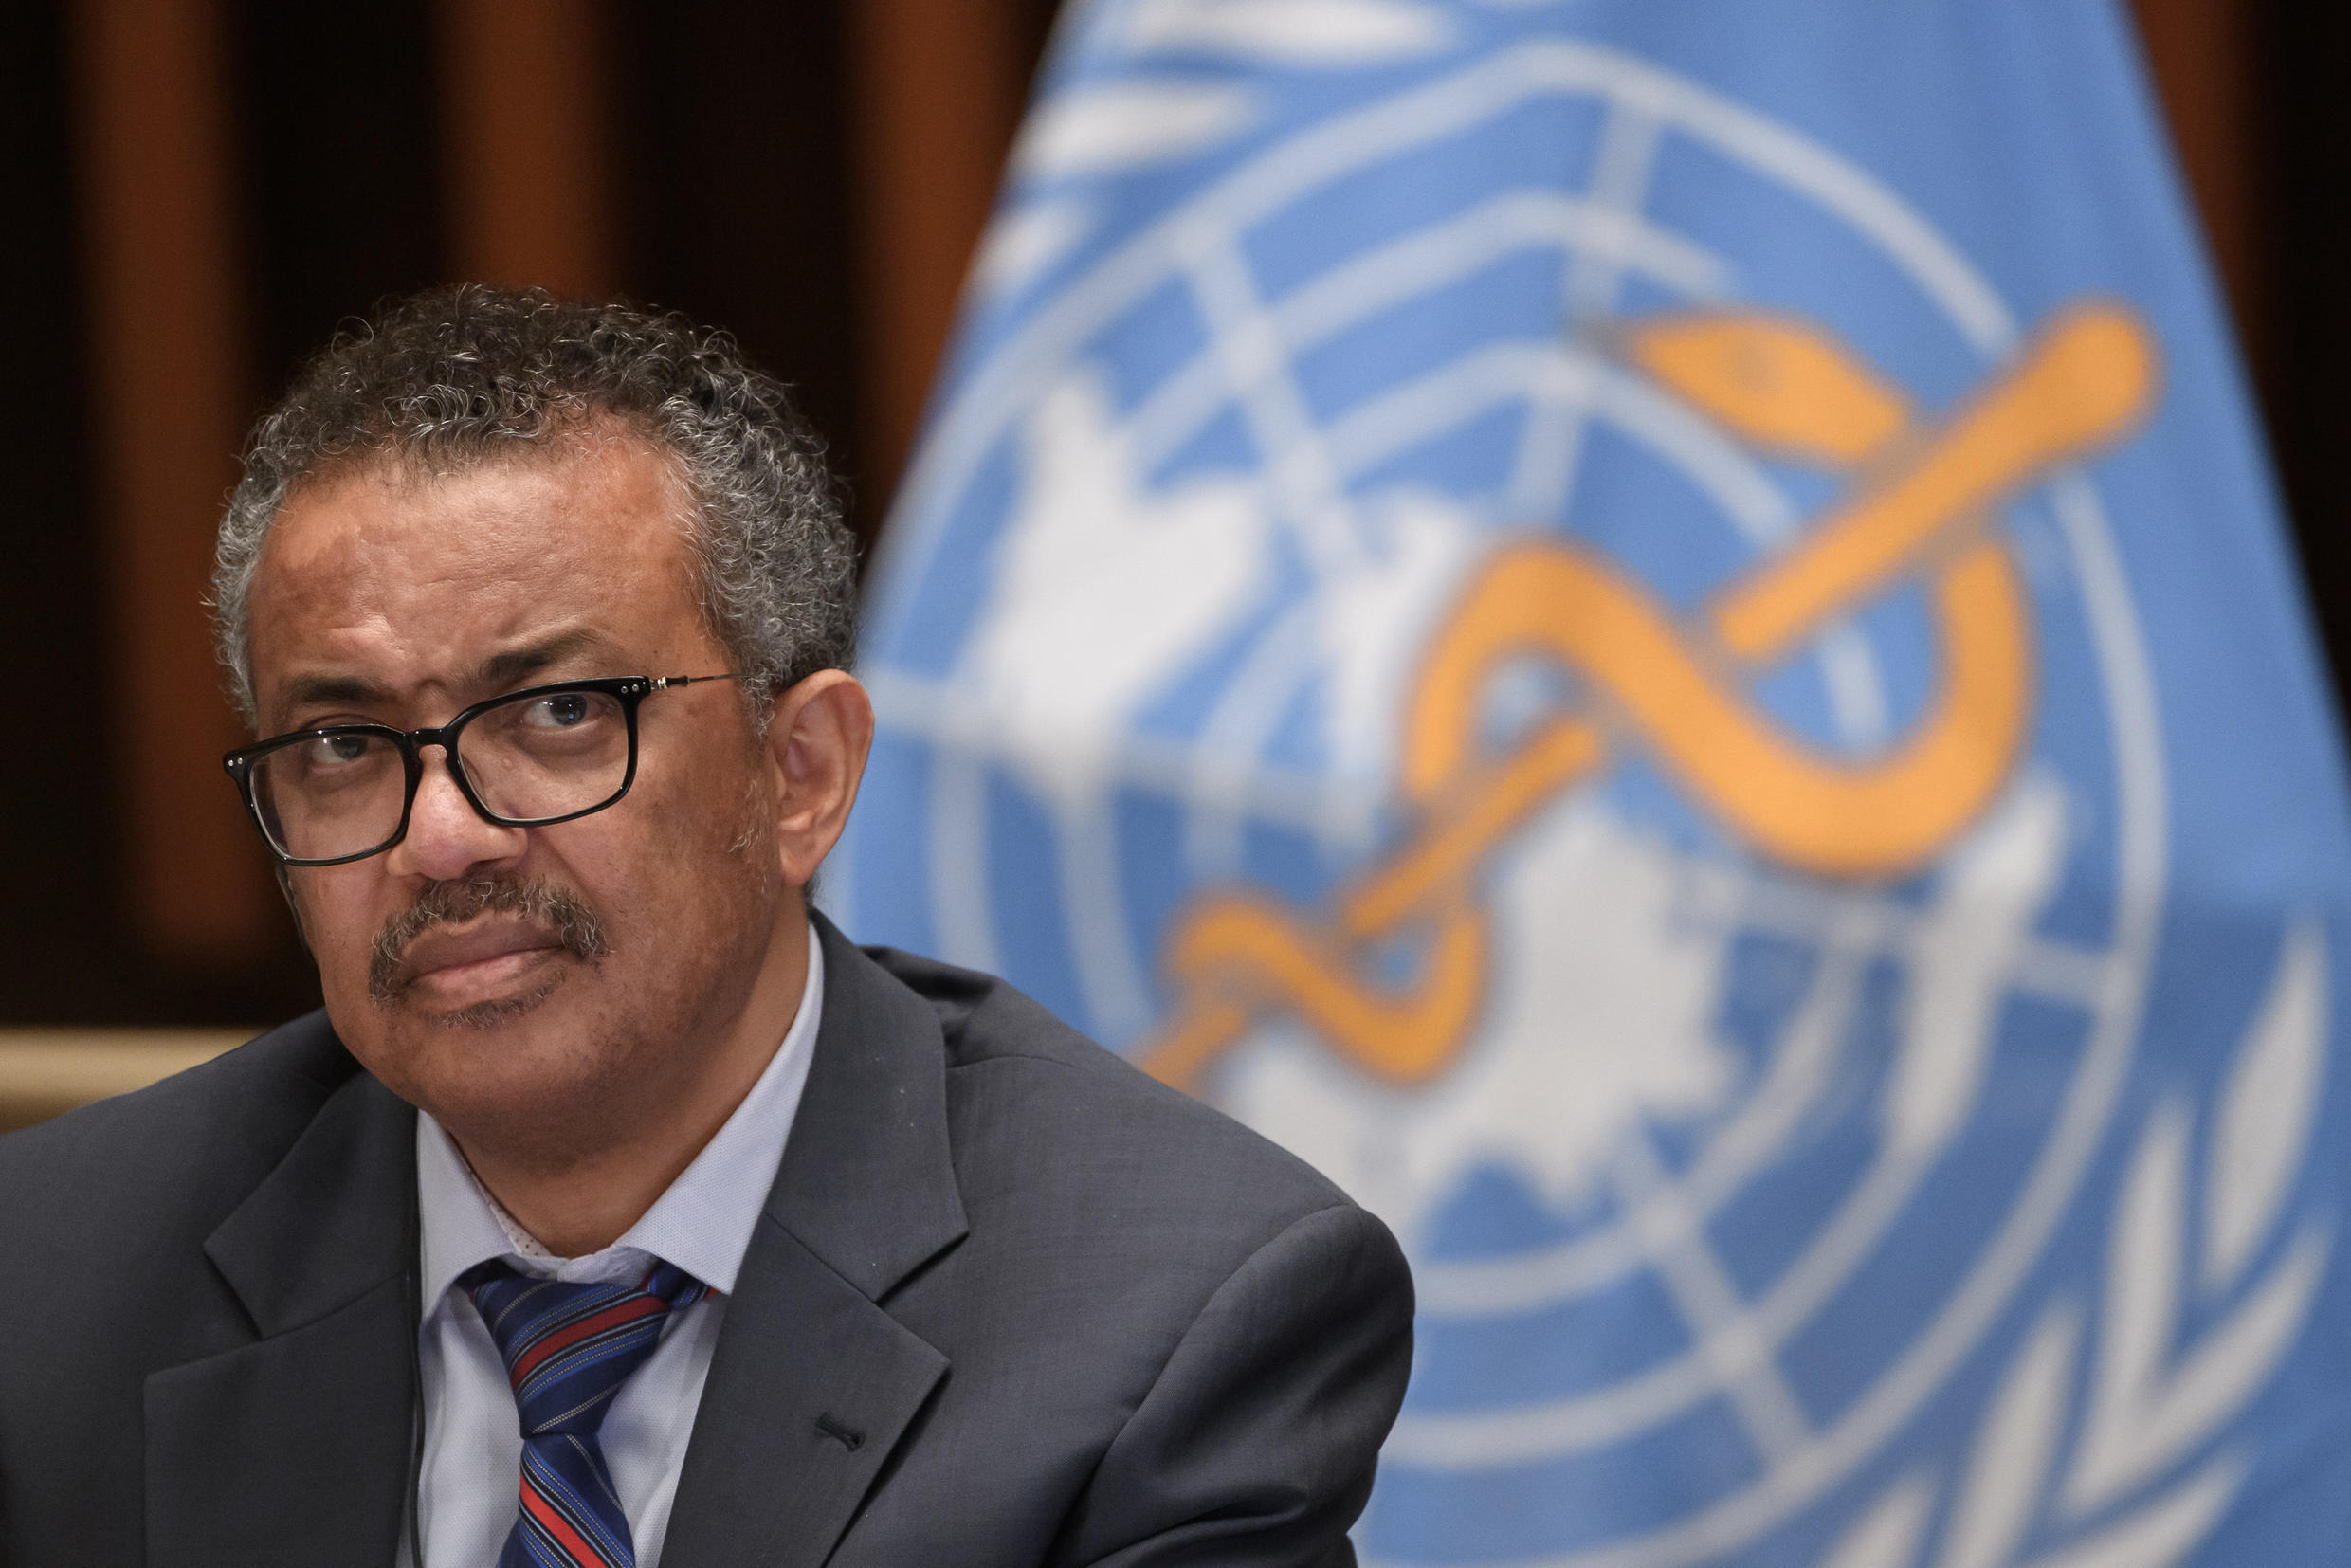 WHO Director-General Tedros Adhanom Ghebreyesus expressed dissapointment over the lack of permission for a group of experts to travel to Wuhan to research the origins of the Covid-19 virus.